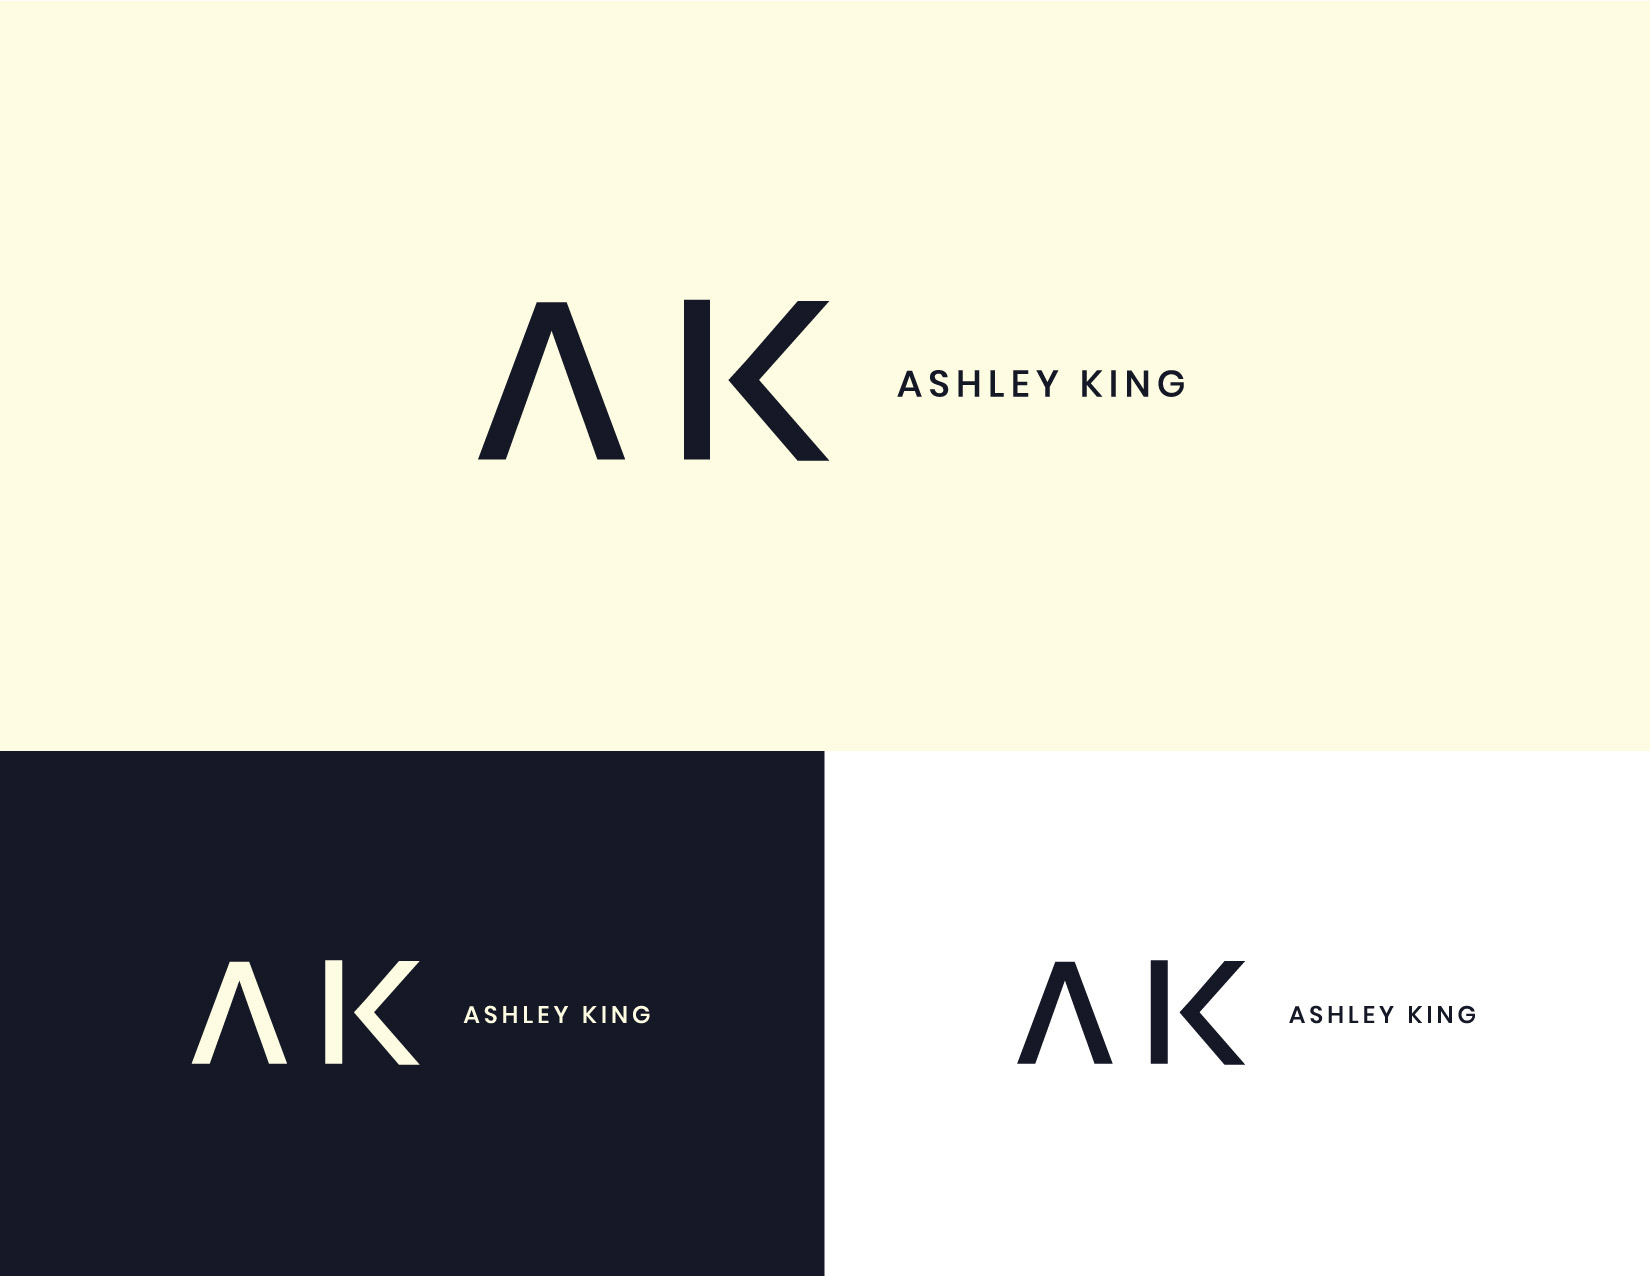 Logo design and branding for Ashley King, a personal fitness instructor. James Cannella Marketing, Design, and Artificial Intelligence Consulting Services